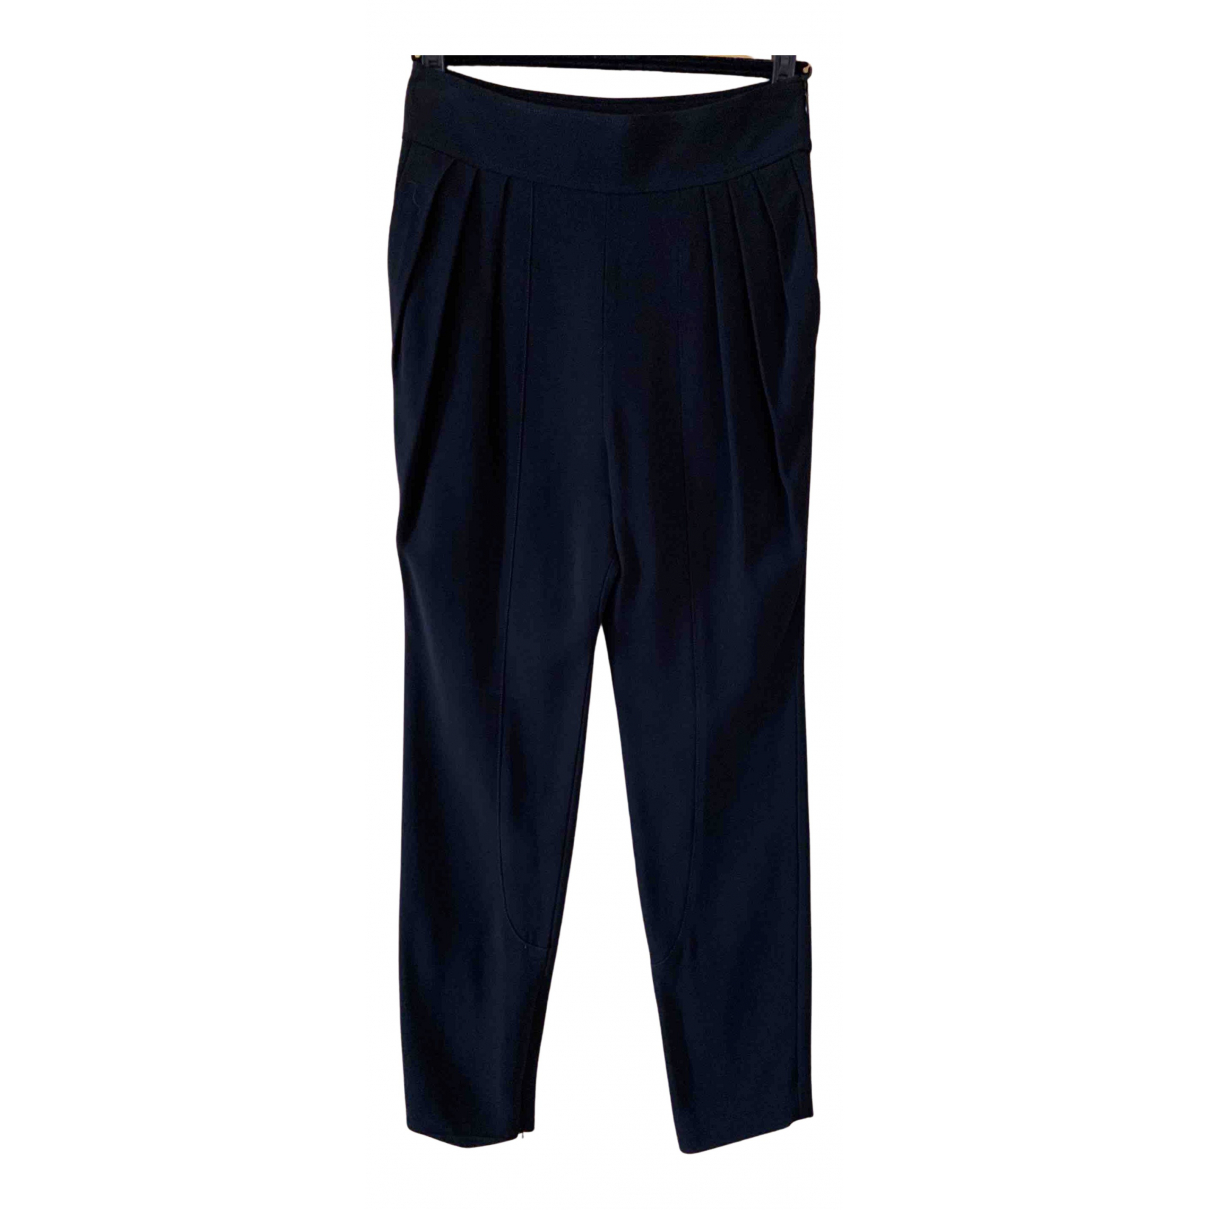 Givenchy N Black Trousers for Women 36 FR